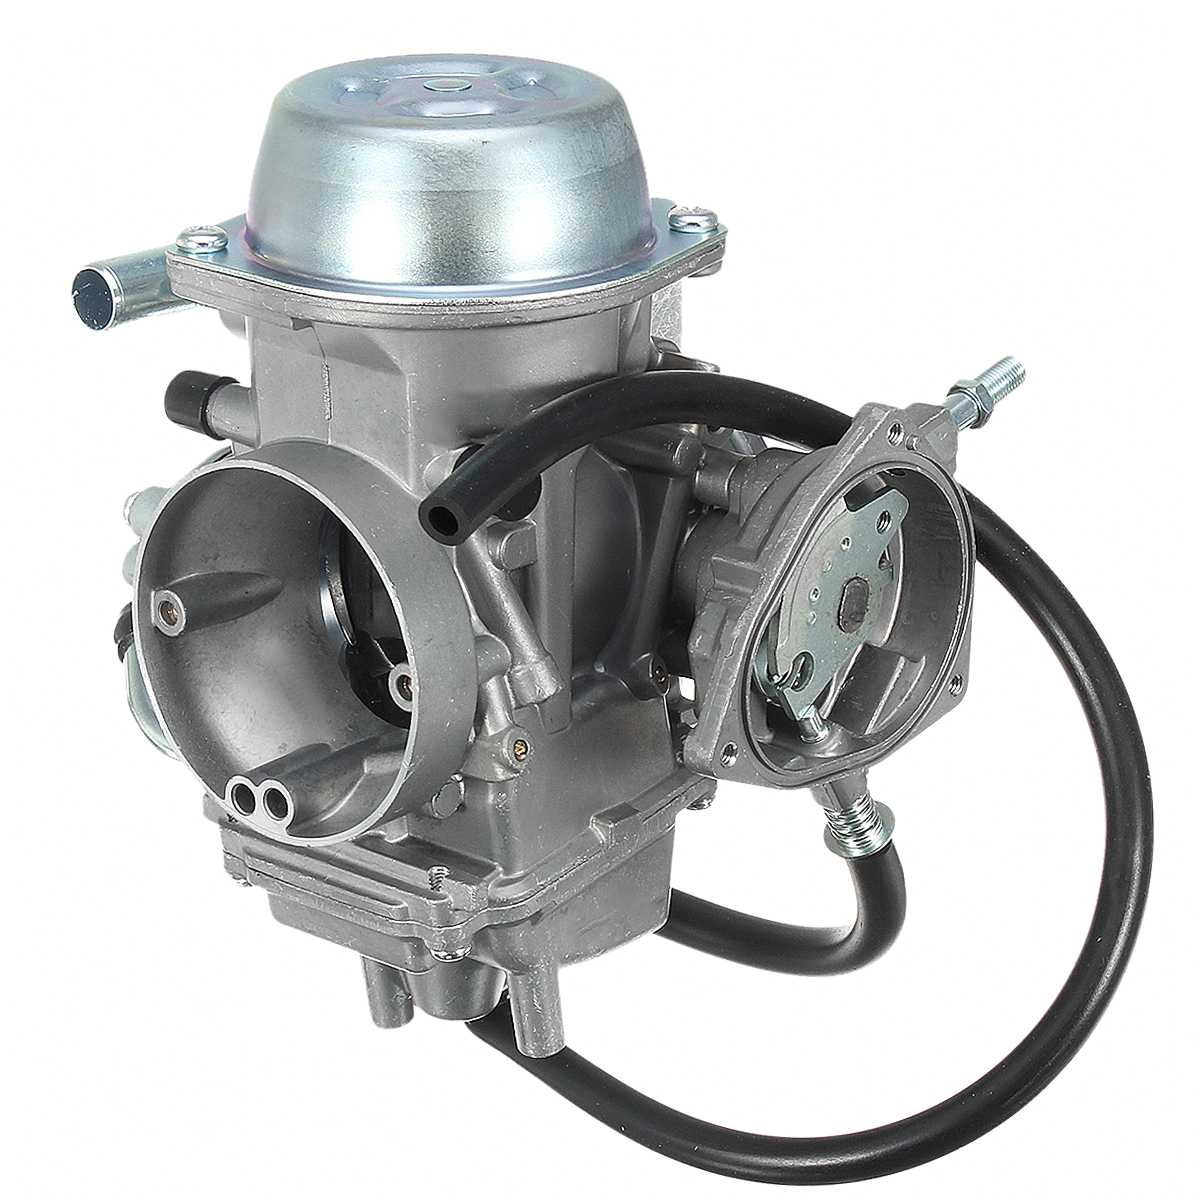 ATV Карбюратор Carb AR1447CA111RA для BOMBARDIER CAN-AM DS650 DS 650 DS650 BAJA